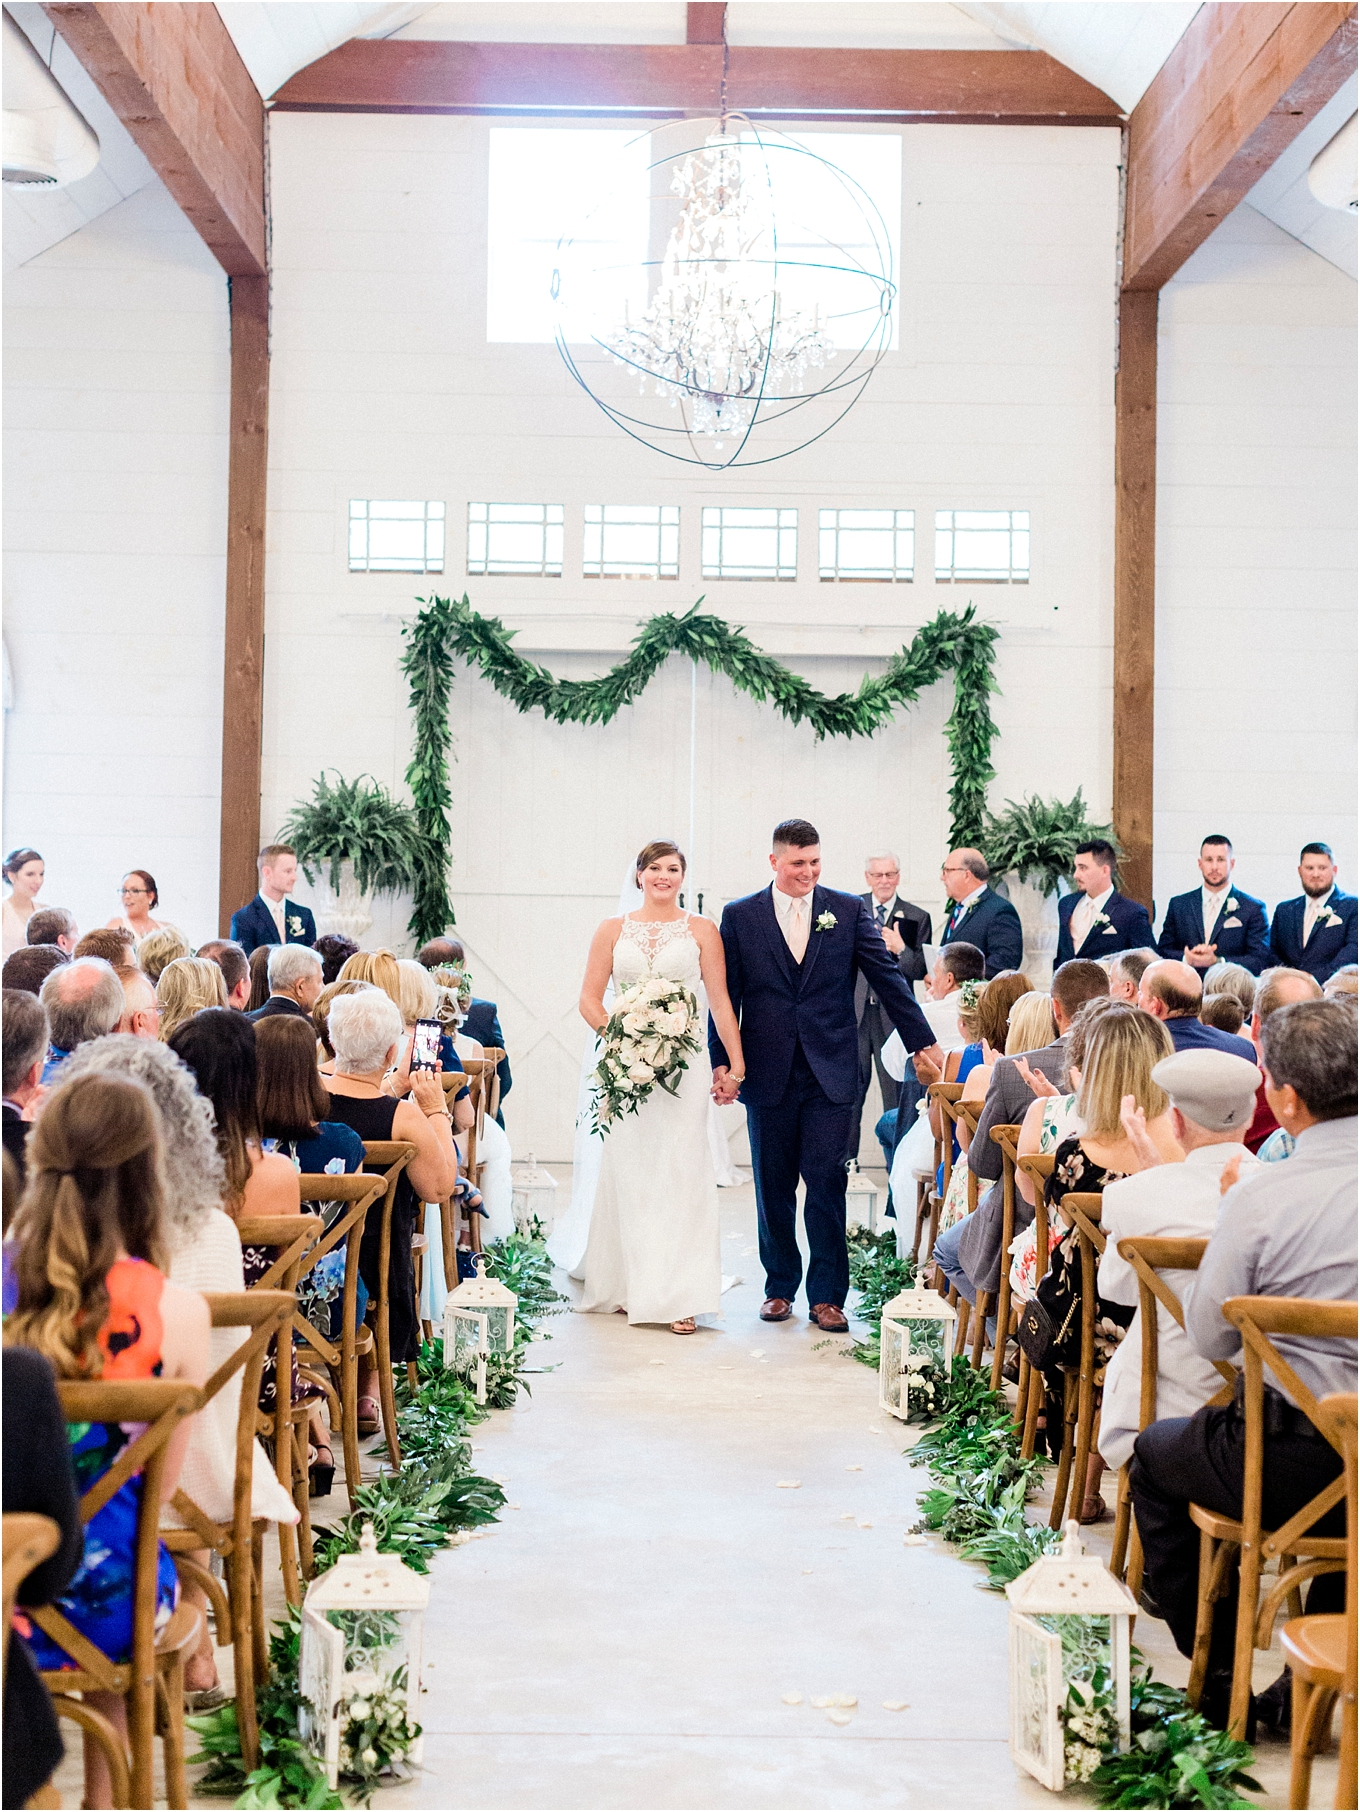 Lisa Silva Photography- Ponte Vedra Beach, St. Augustine and Jacksonville, Florida Fine Art Film Wedding and Boudoir Photography- Elegant Blush and Navy Wedding at Chandler Oaks Barn in St. Augustine, Florida_0070.jpg